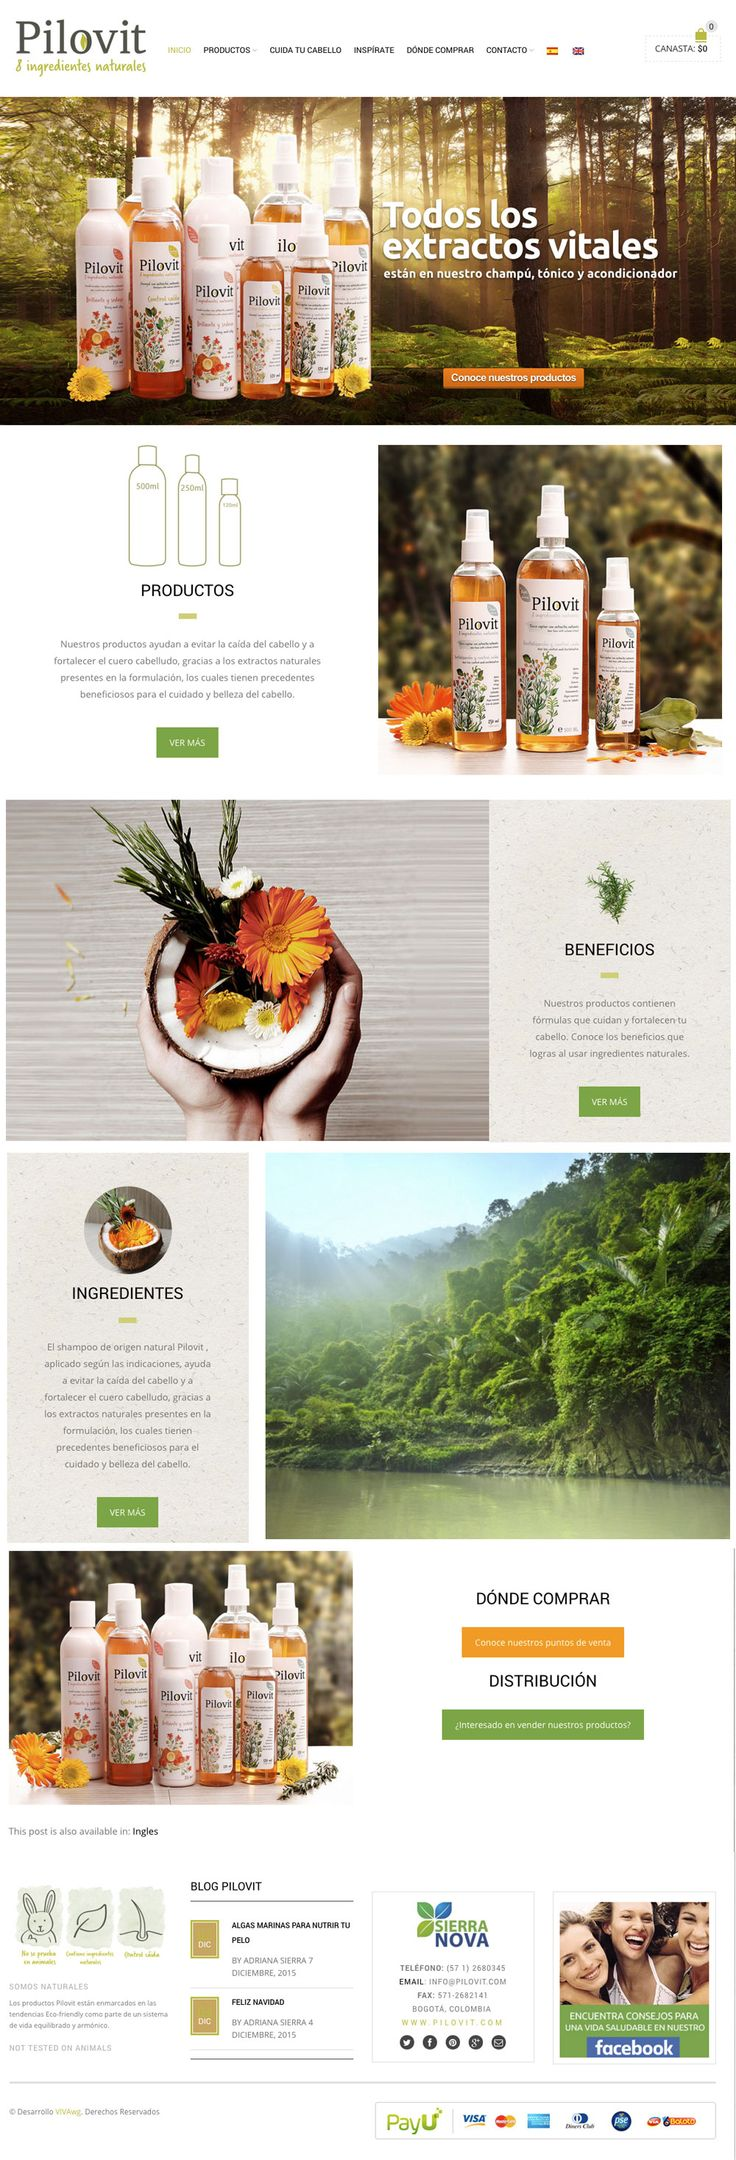 Web design for PILOVIT - Diseño web #Ecommerce